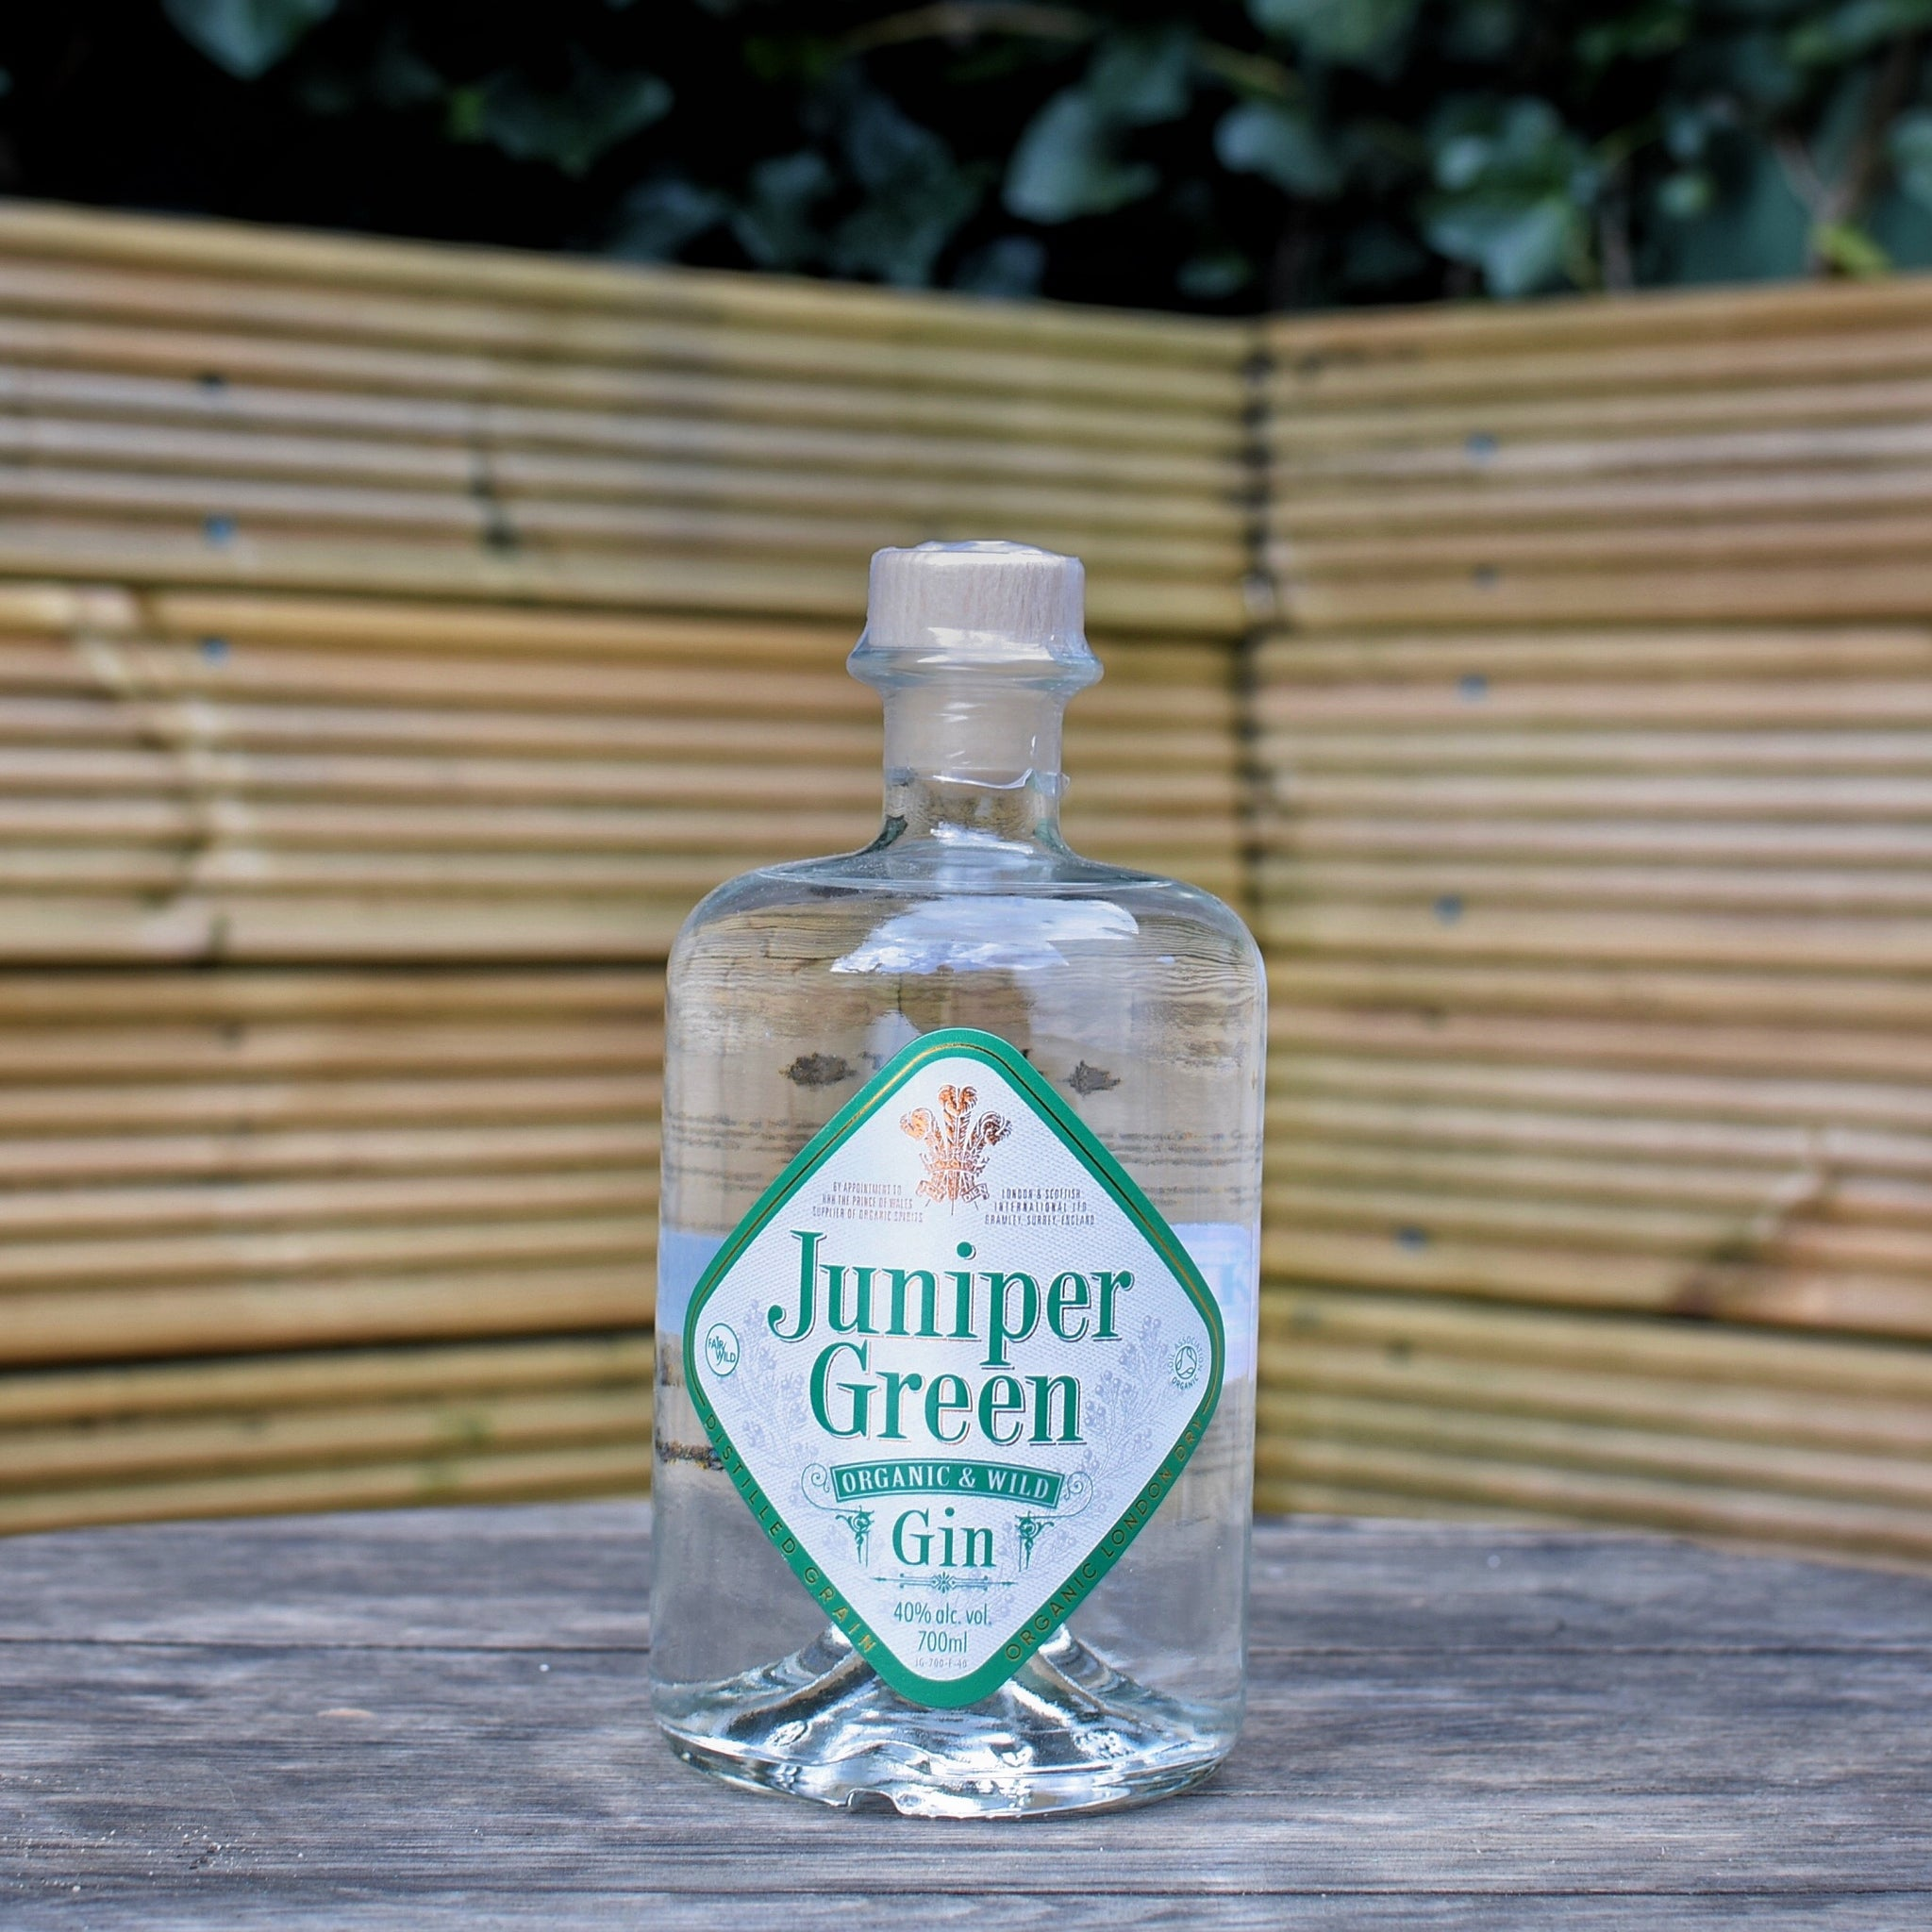 Juniper Green London Gin